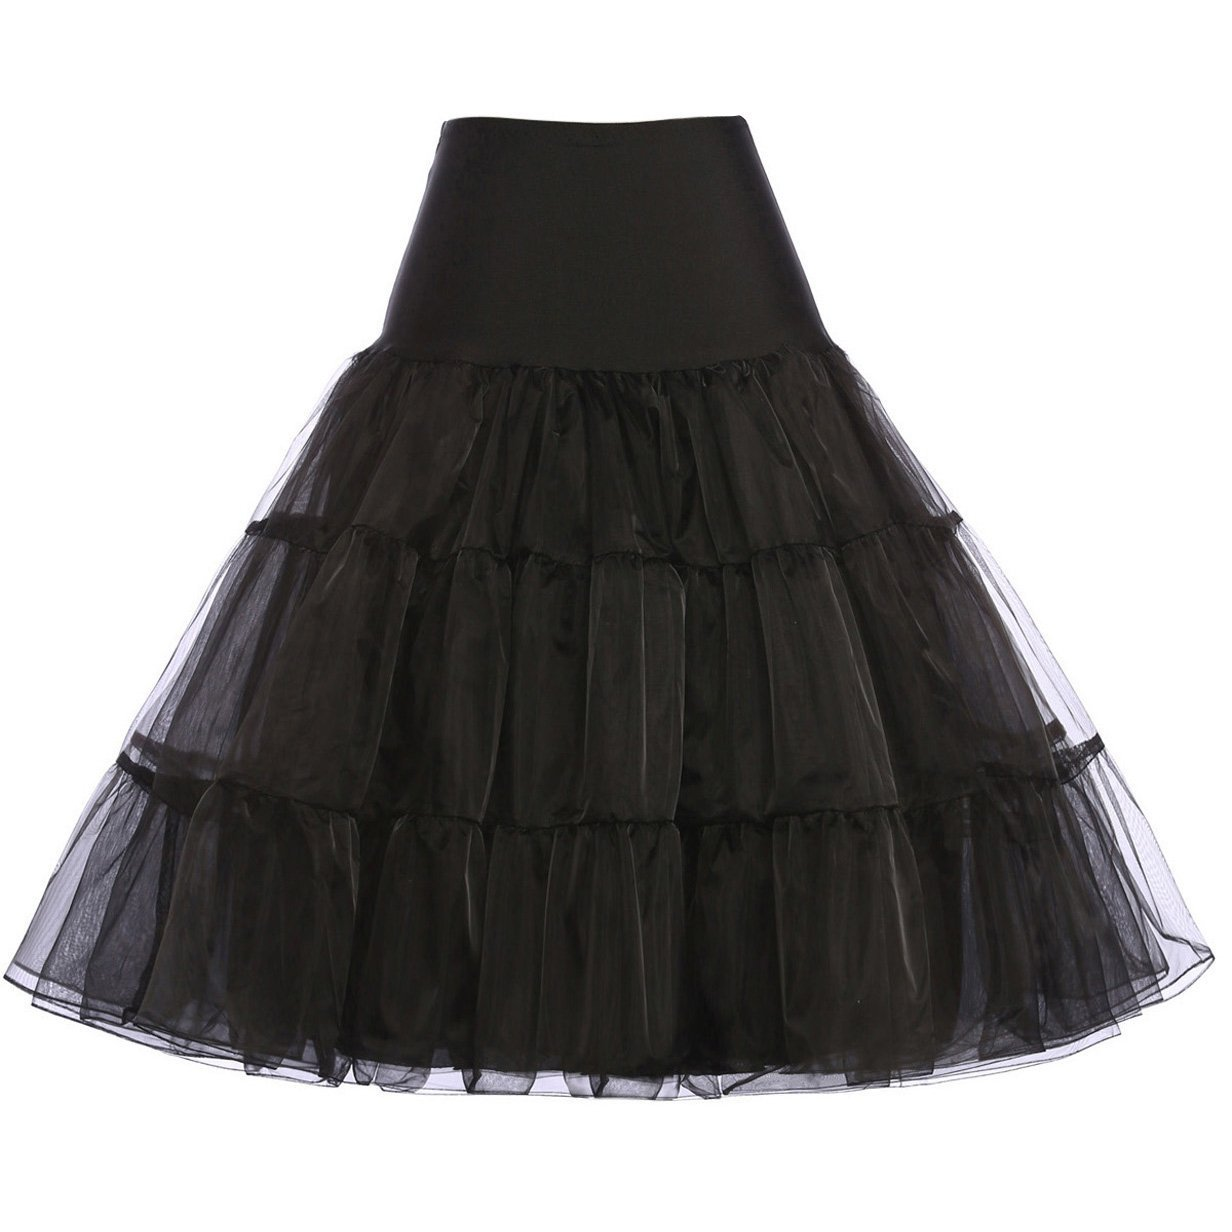 GRACE KARIN Knee Length Voile Petticoat for Cocktail Party Dress XL 922-1